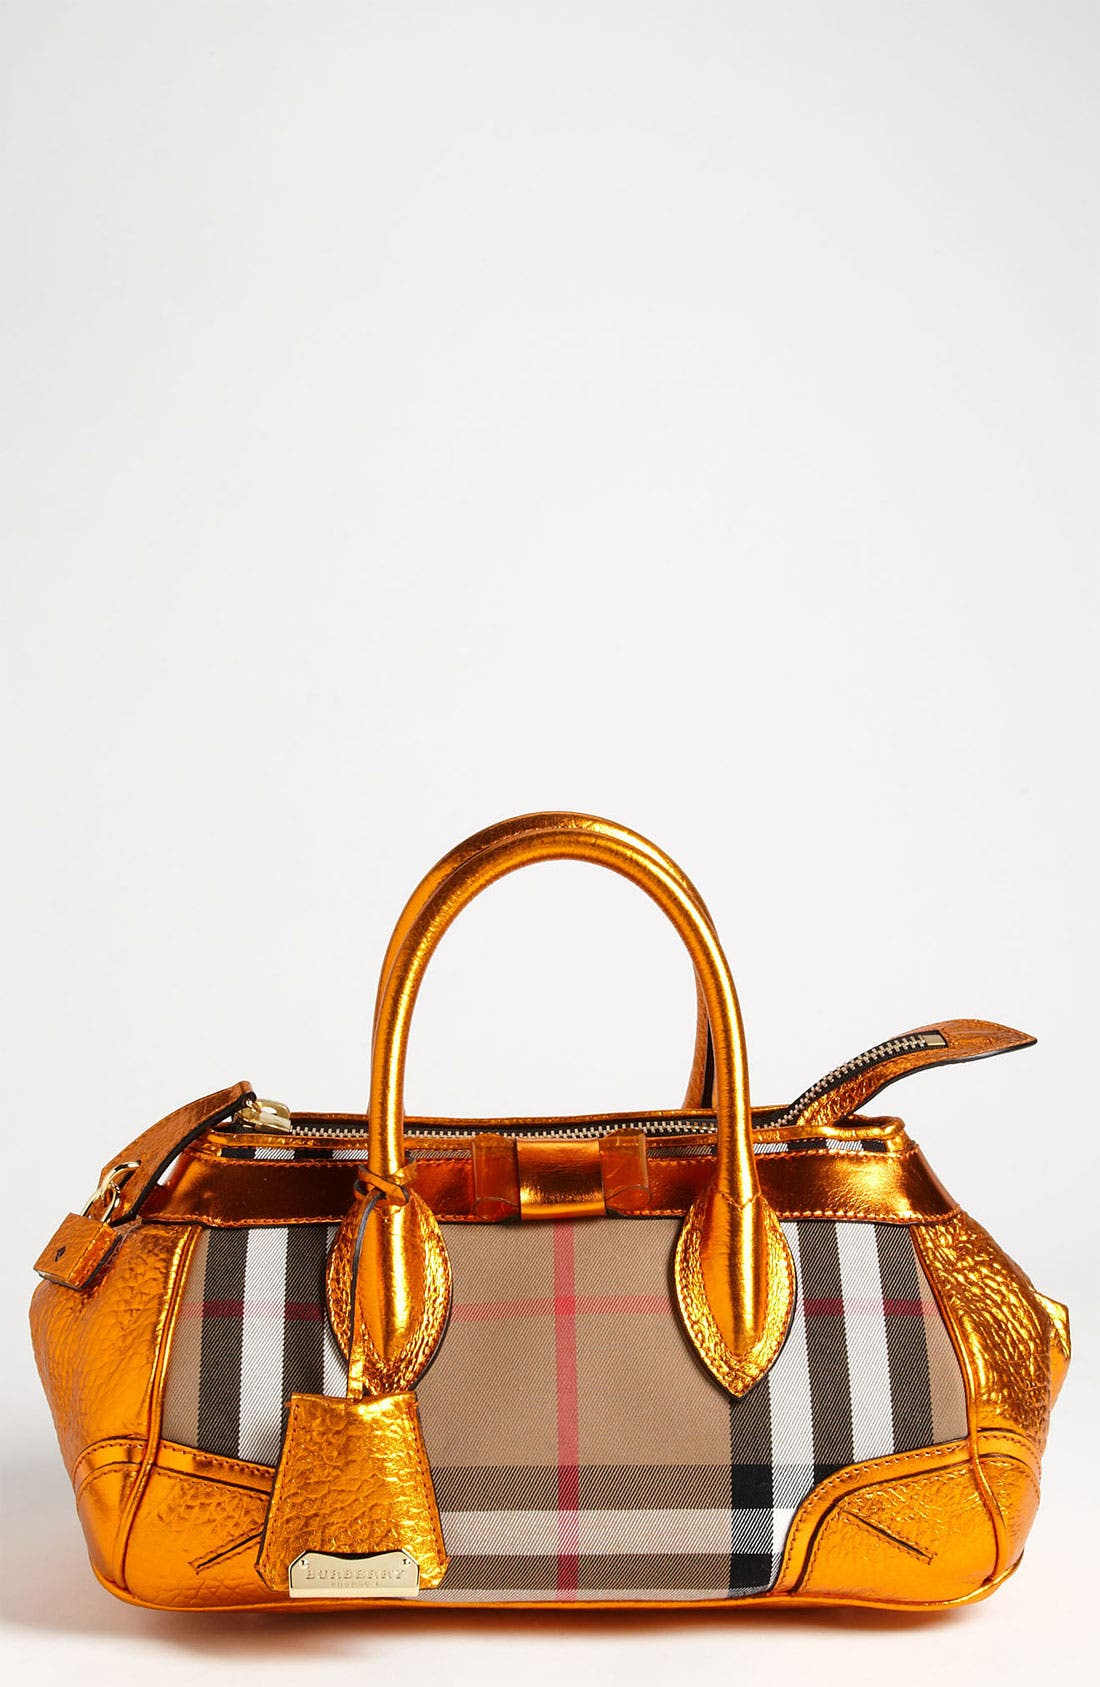 Alternate Image 1 Selected - Burberry Prorsum 'Blaze' House Check Handbag